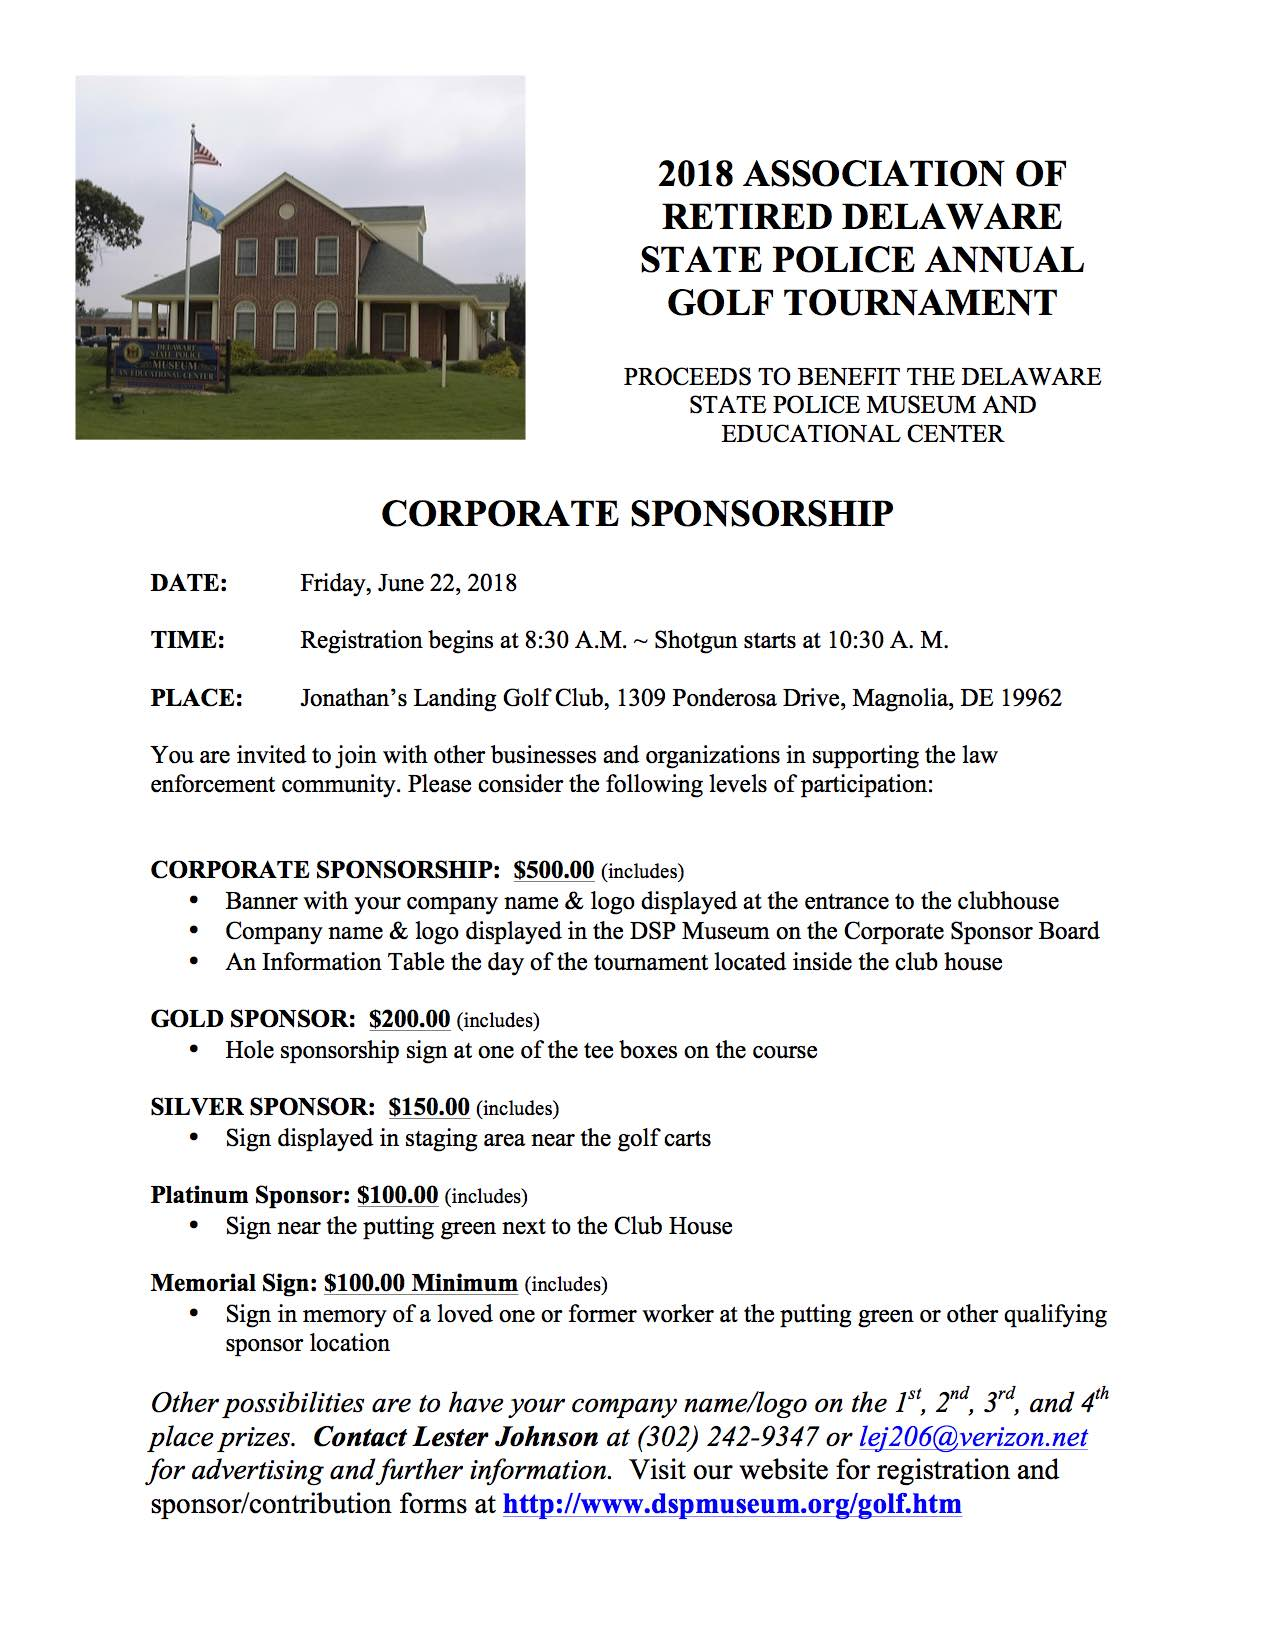 Delaware State Police Golf Tournament Donation Form